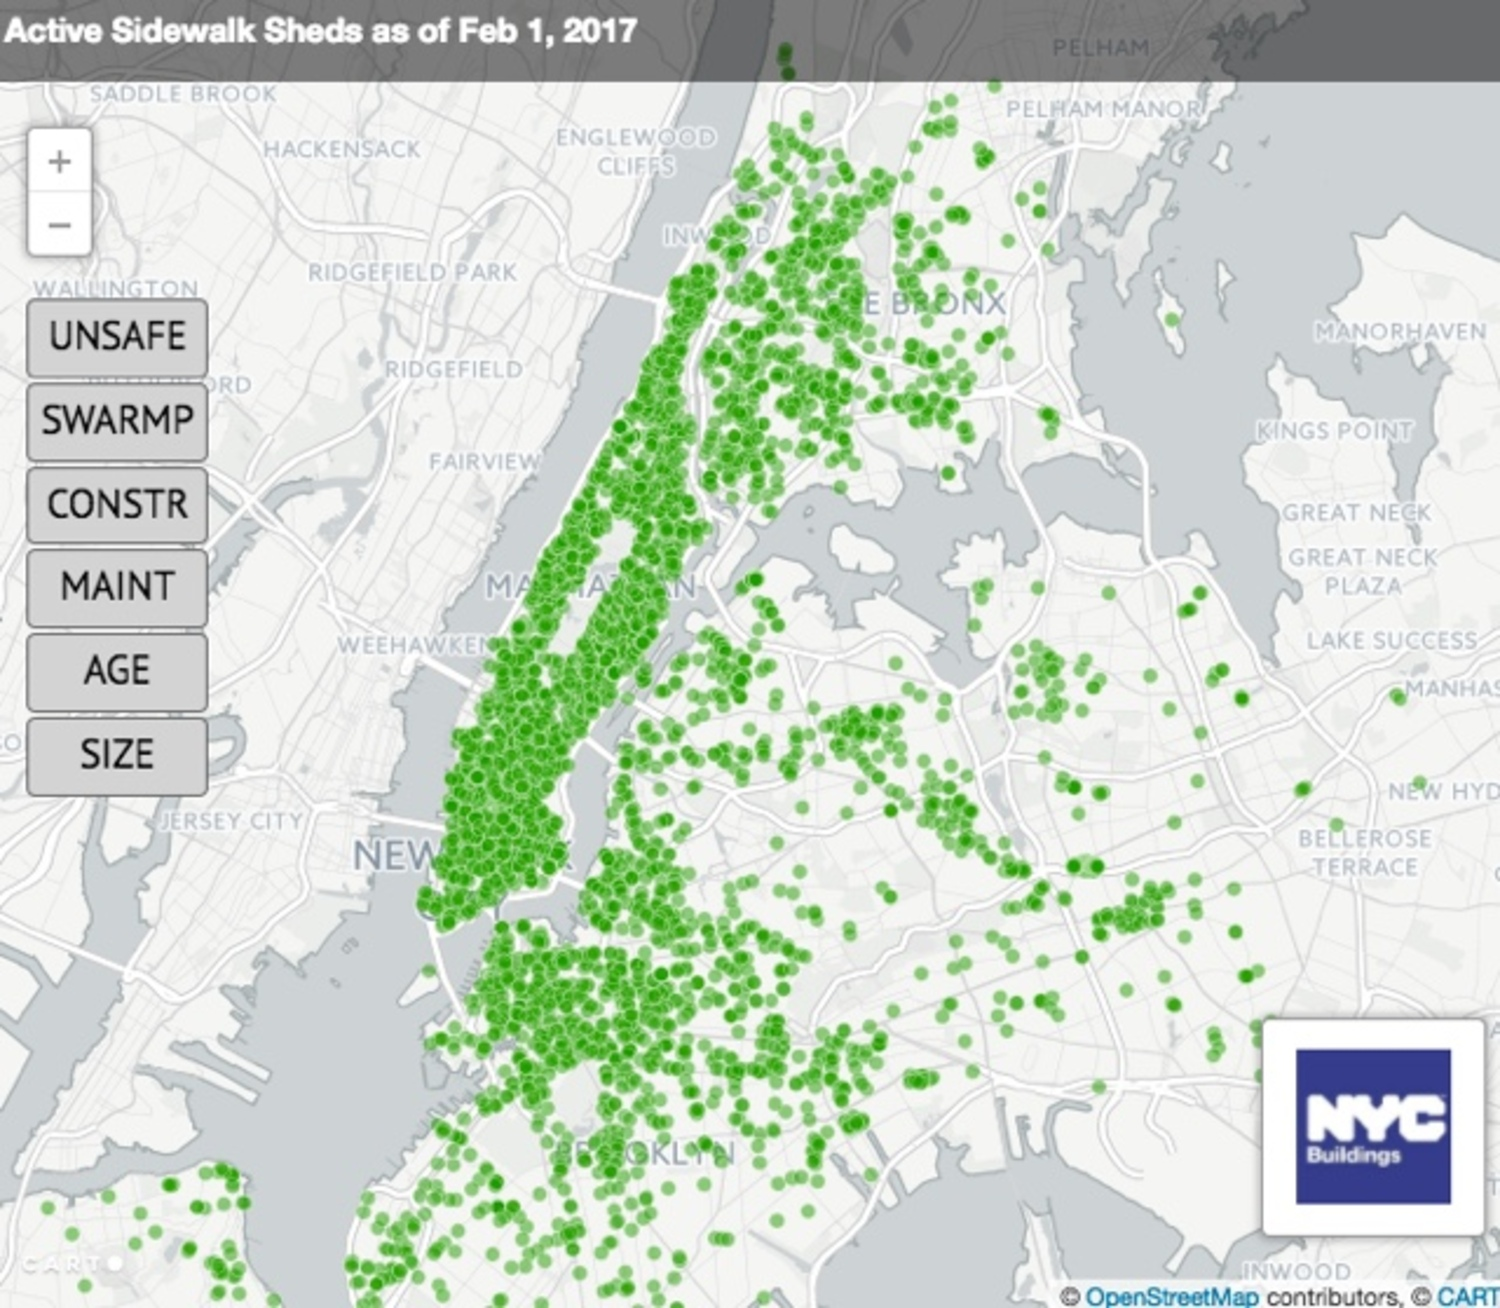 Interactive Map Of New York City.Interactive Map Shows All Scaffolding And Sidewalk Sheds In New York